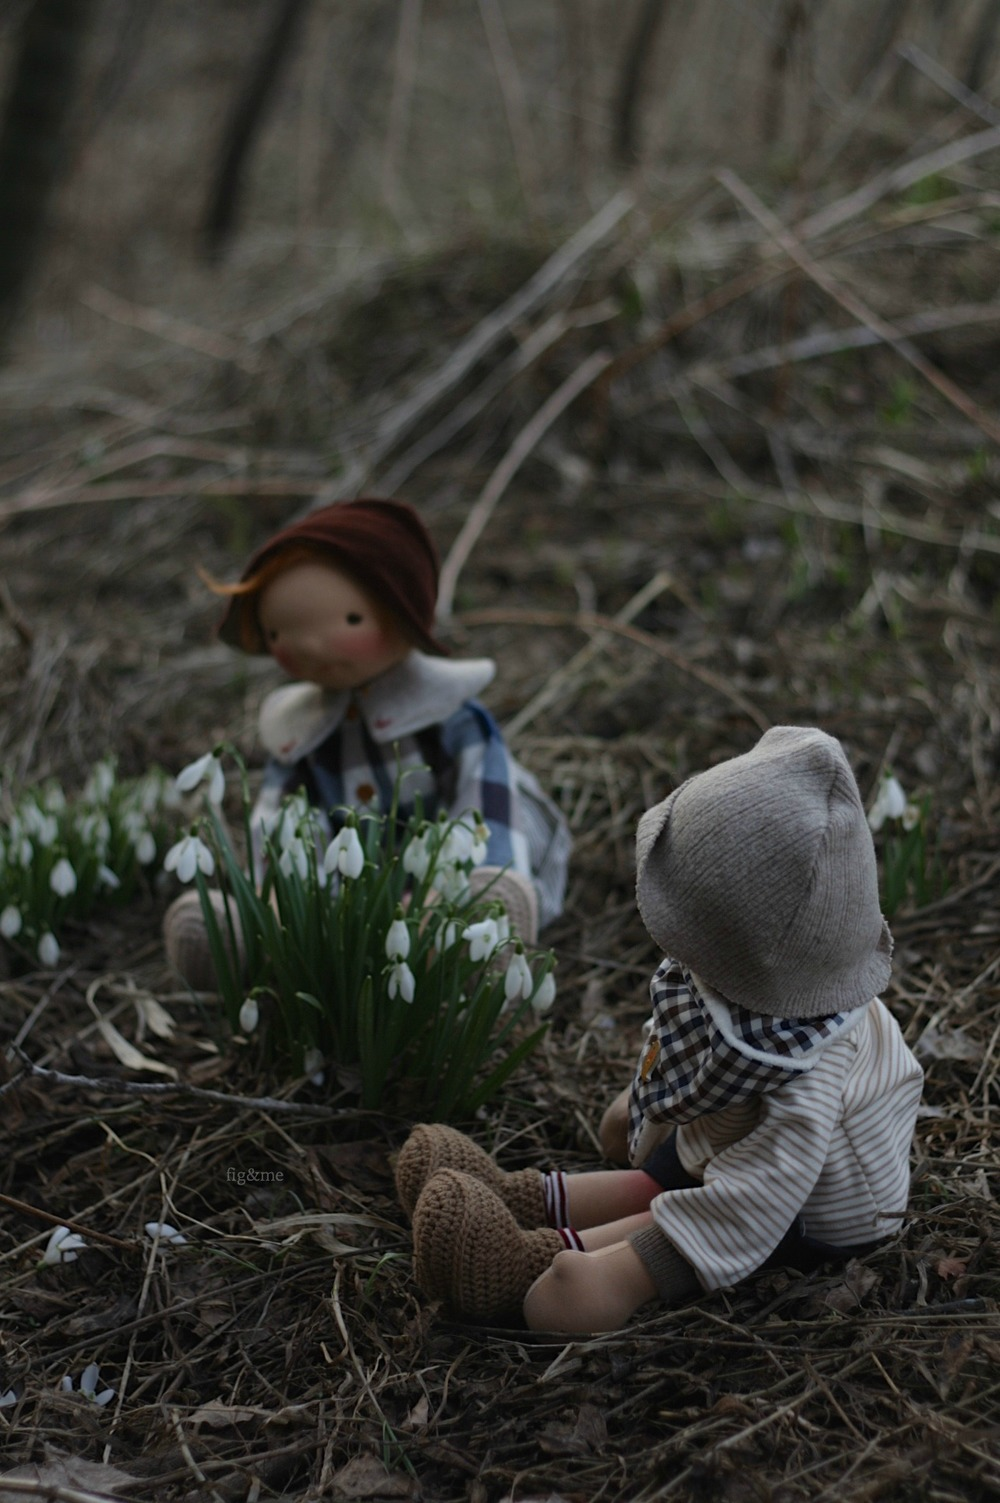 Playing by the snowdrops, by Fig and me